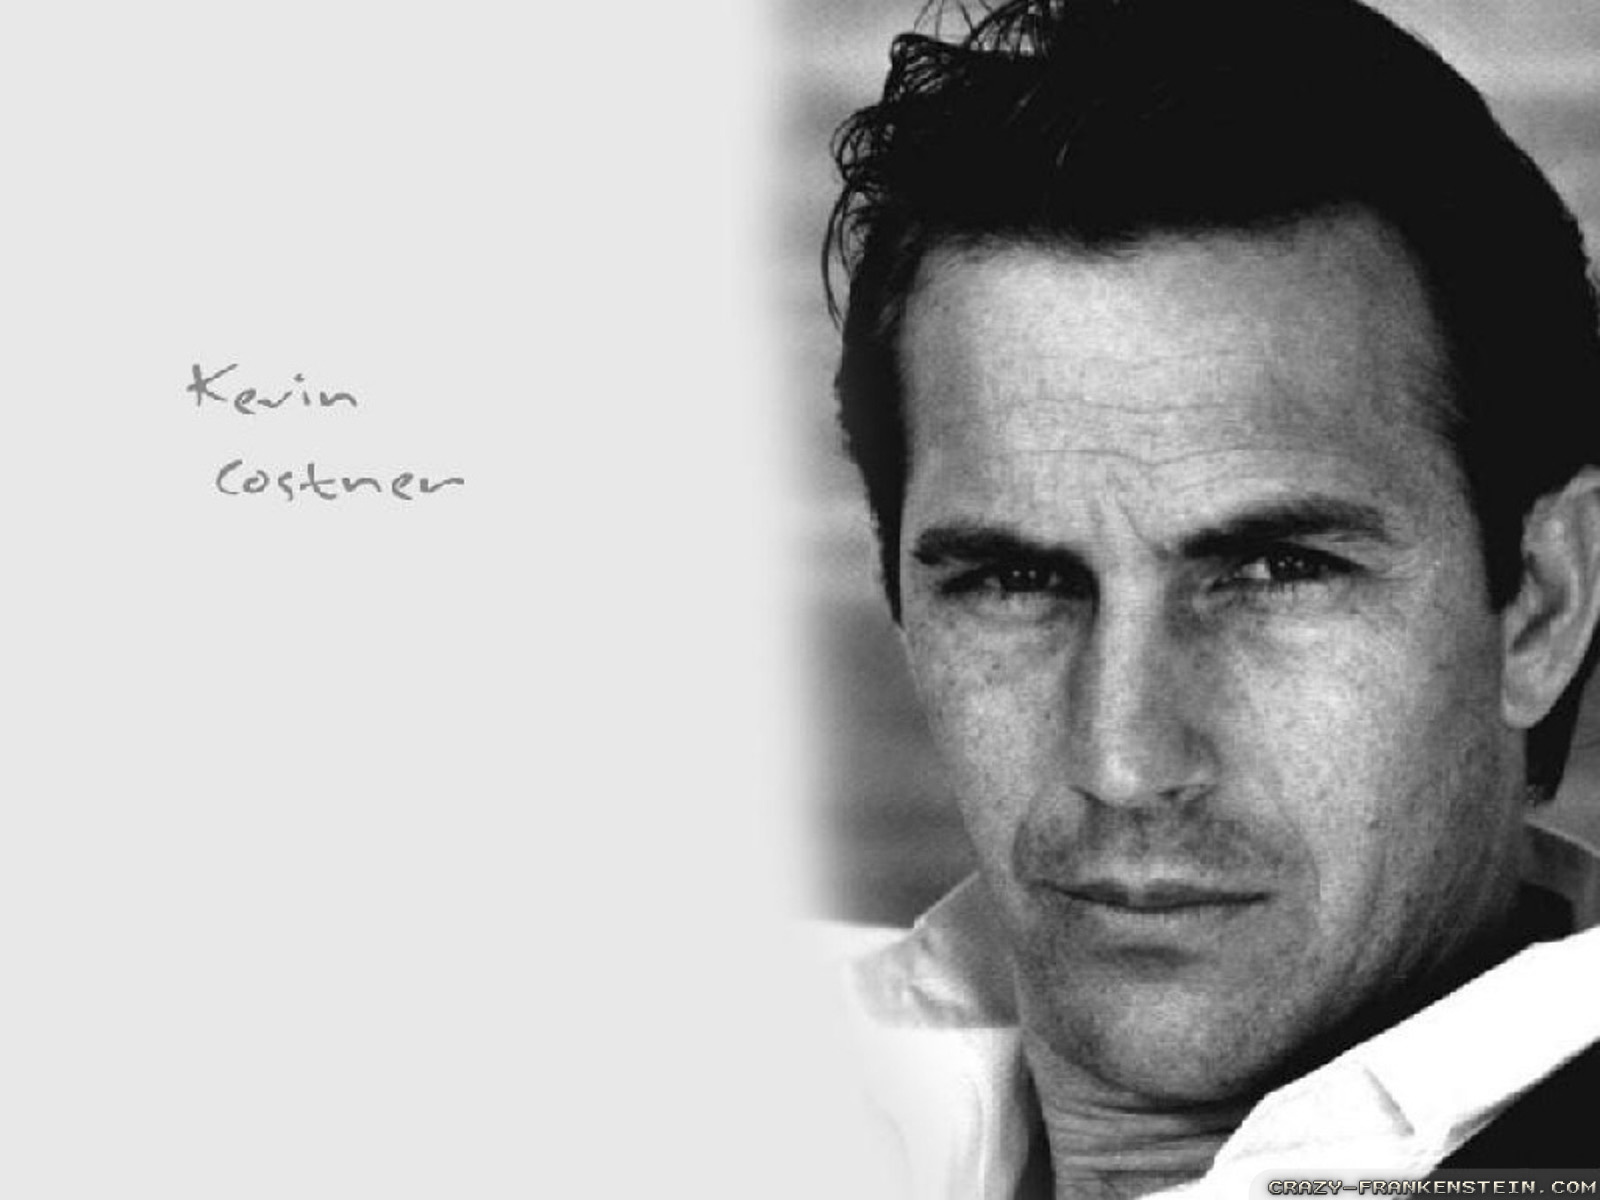 Wallpaper White Black Kevin Costner Wallpapers Free Wallpapers Amp Background